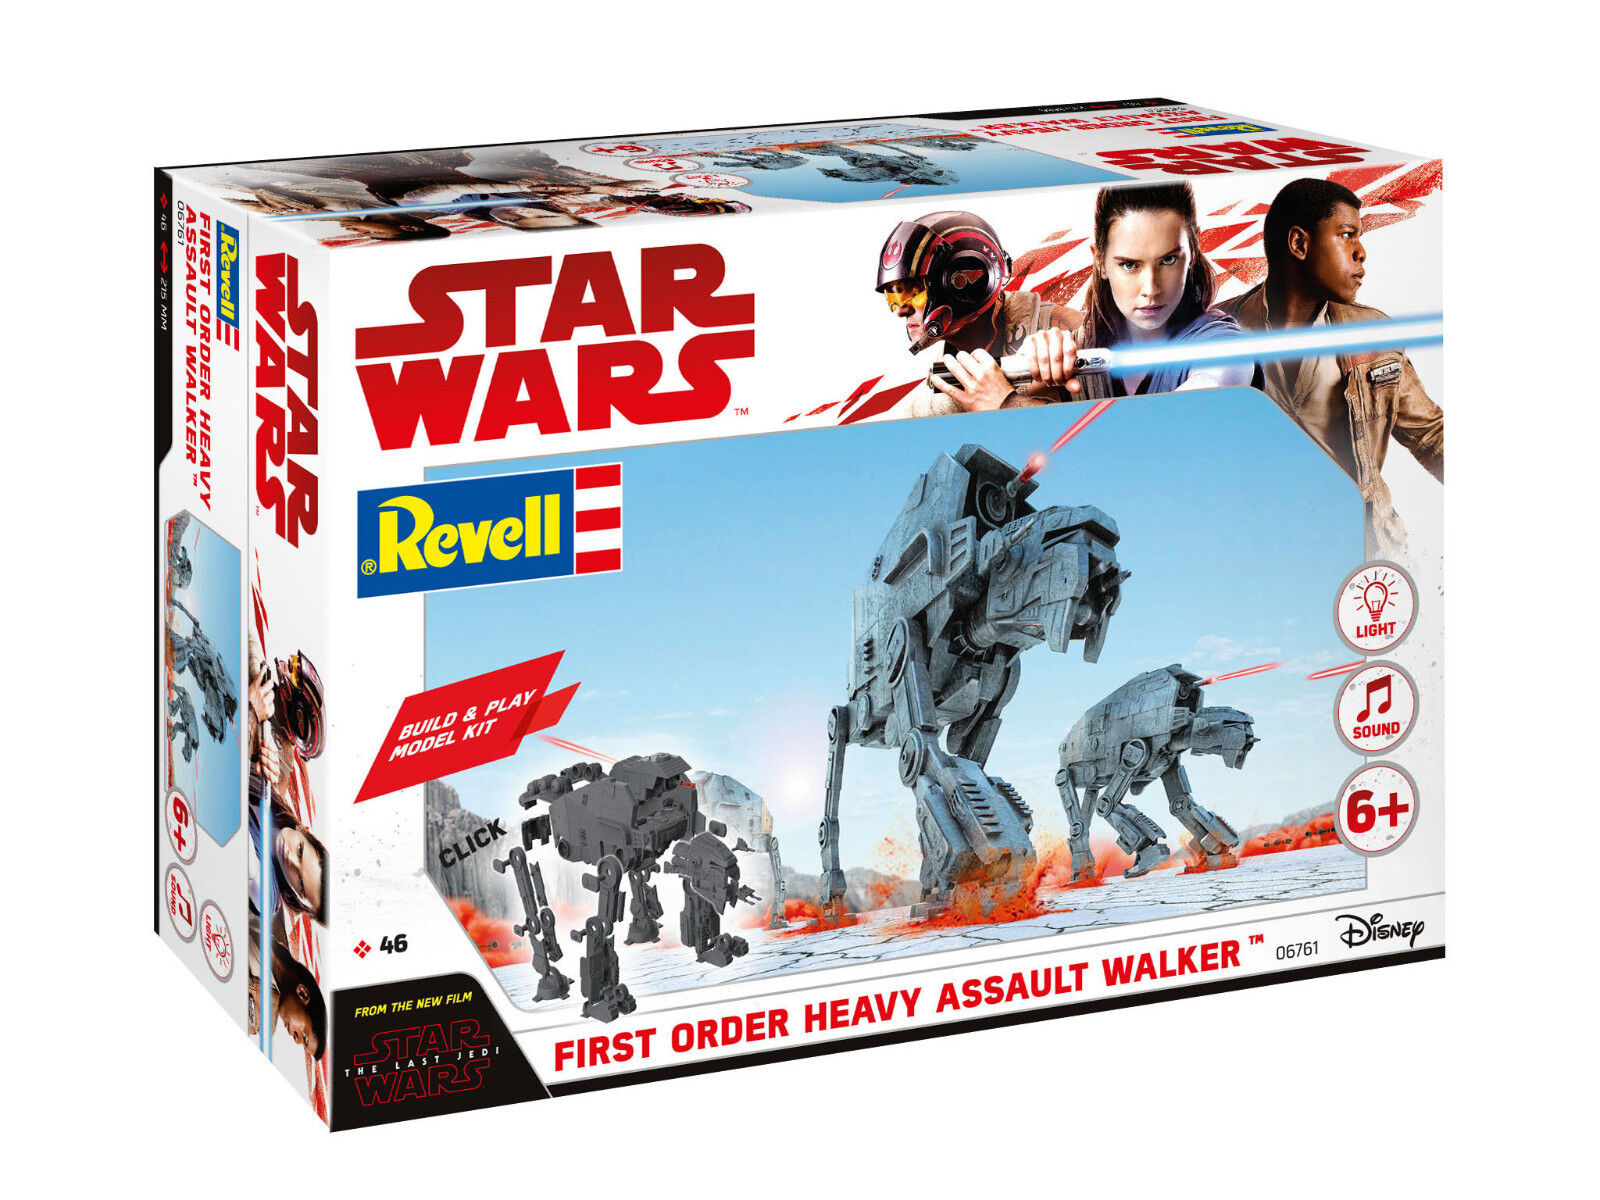 45431 | Revell 06761 Star Wars Heavy Assault Walker Sound Licht Bausatz NEU OVP